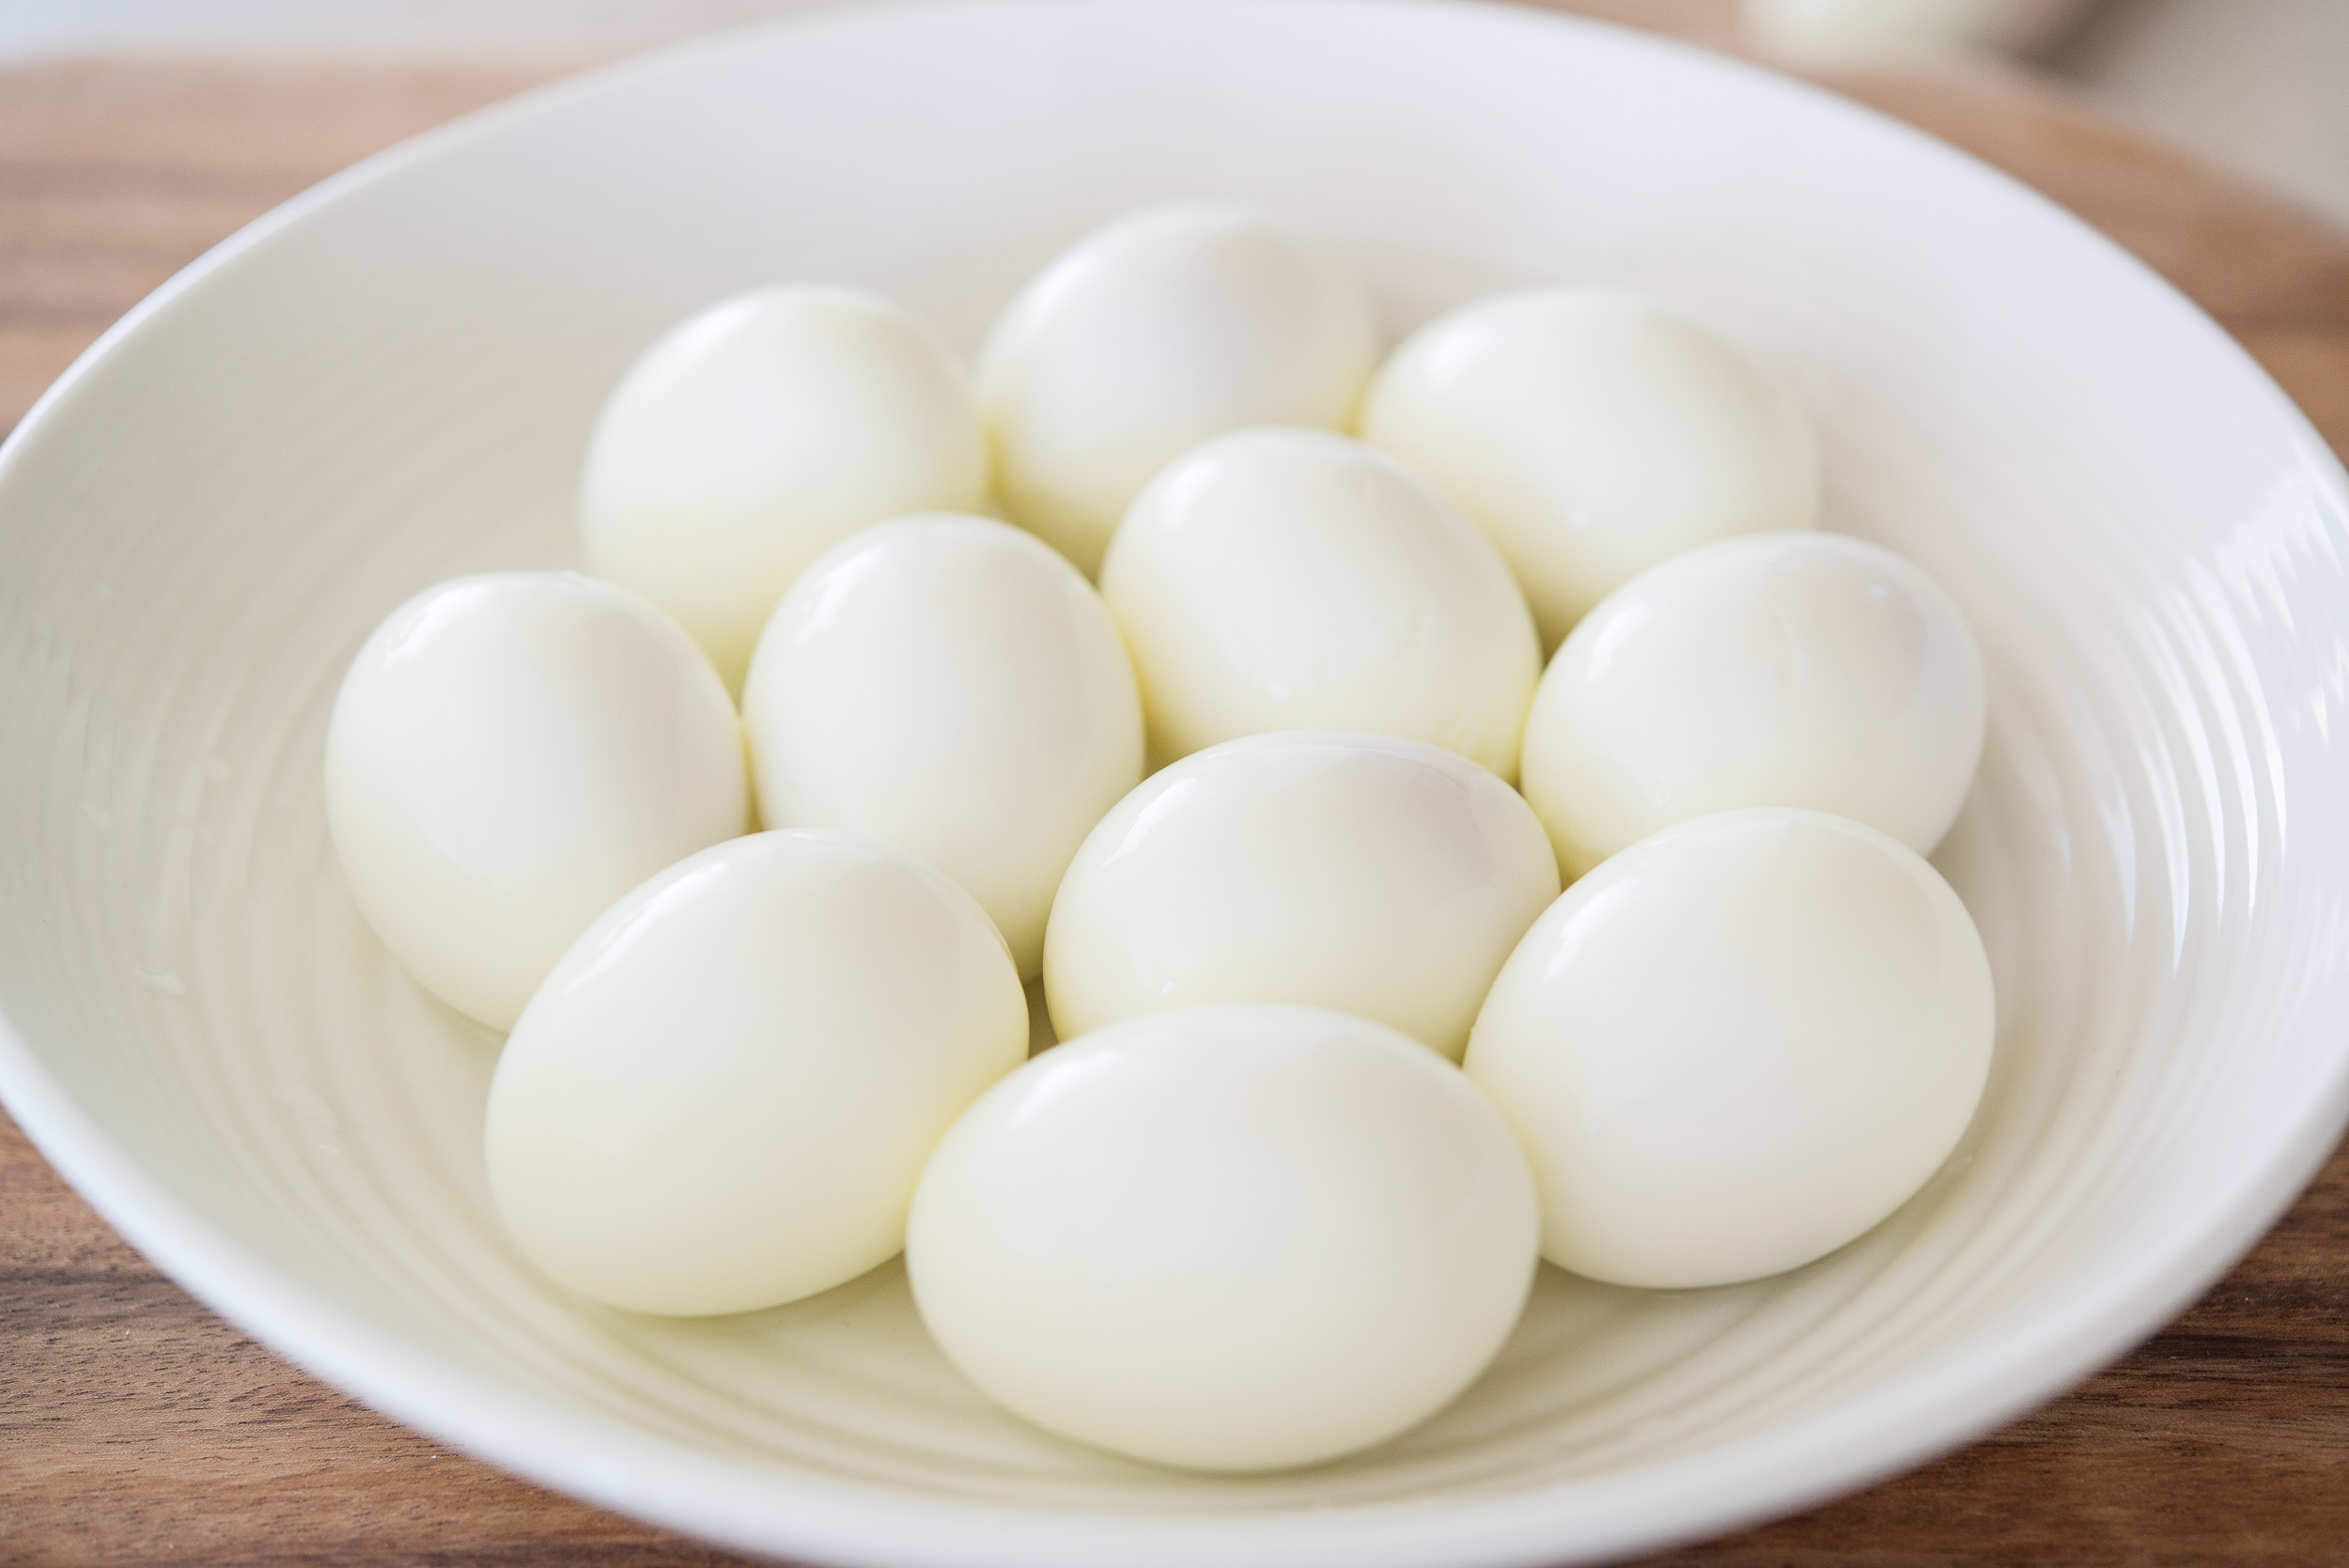 perfect-easy-to-peel-hard-boiled-eggs-08